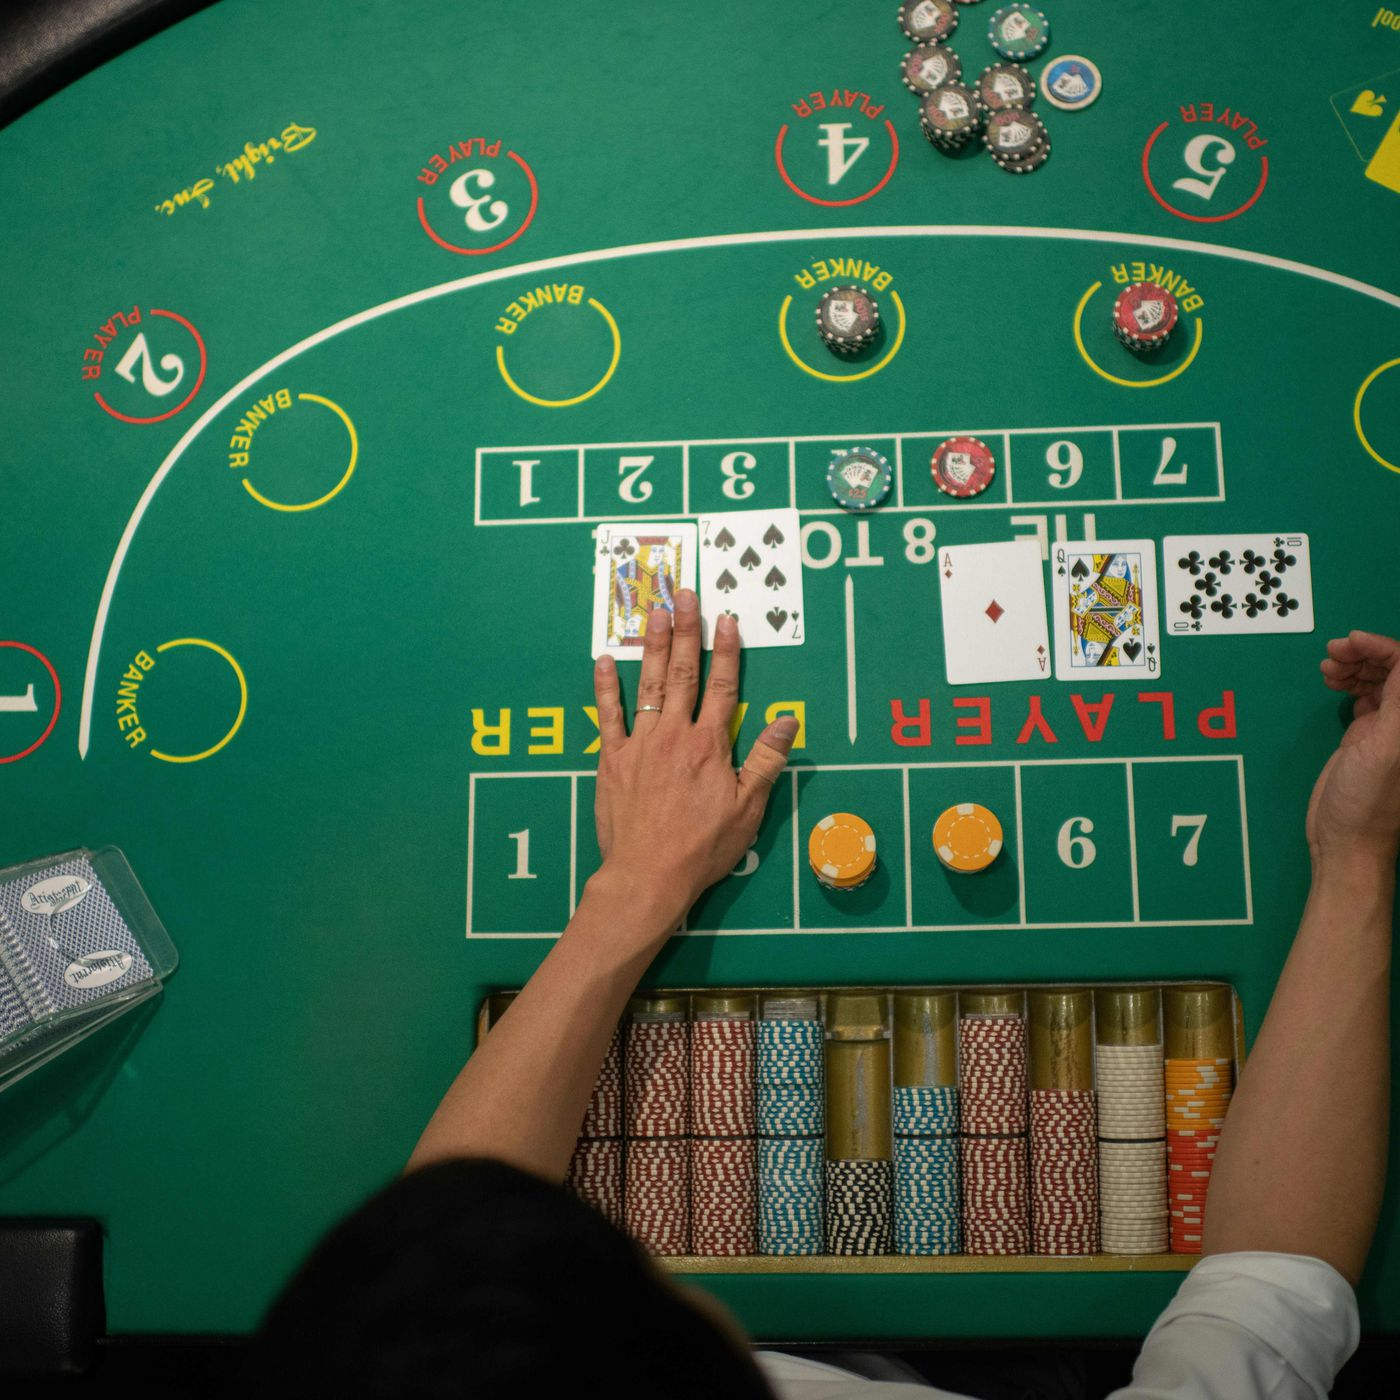 Decide to use the gamble button to win a combination of games in online casinos